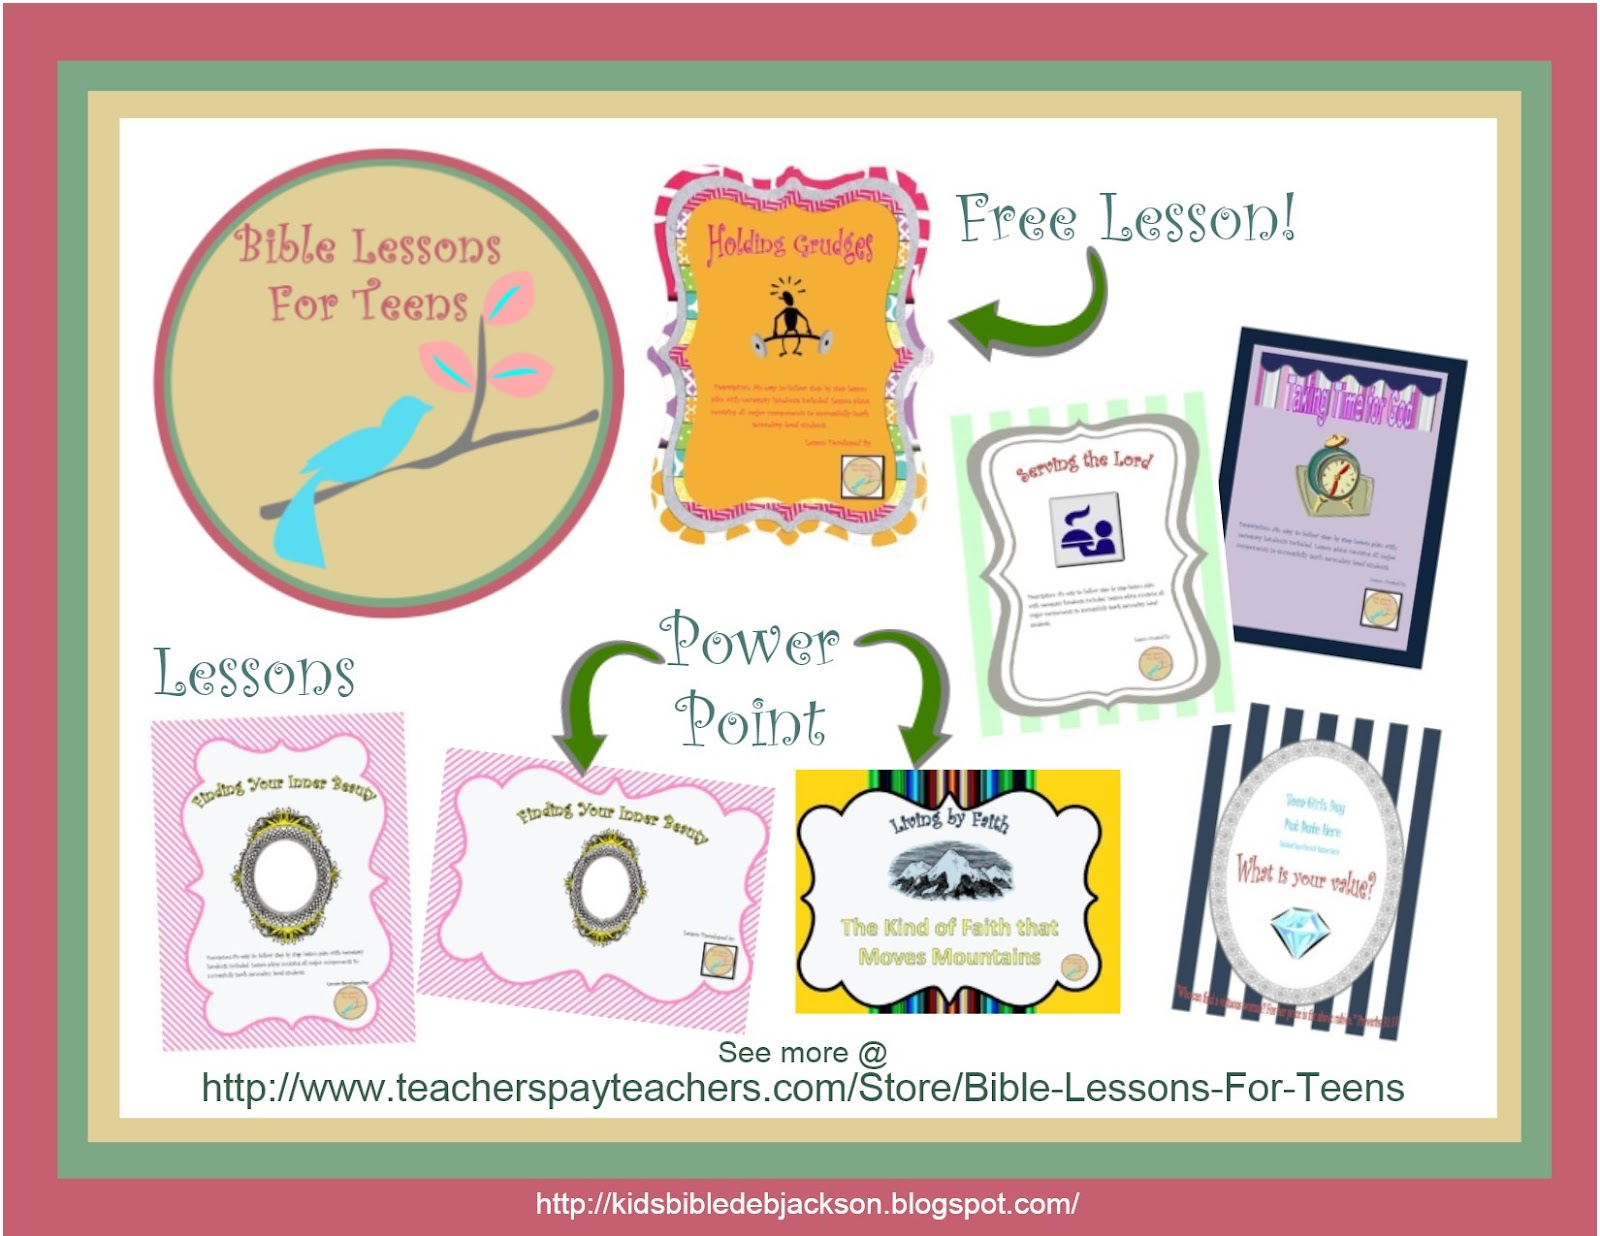 http://www.teacherspayteachers.com/Store/Bible-Lessons-For-Teens